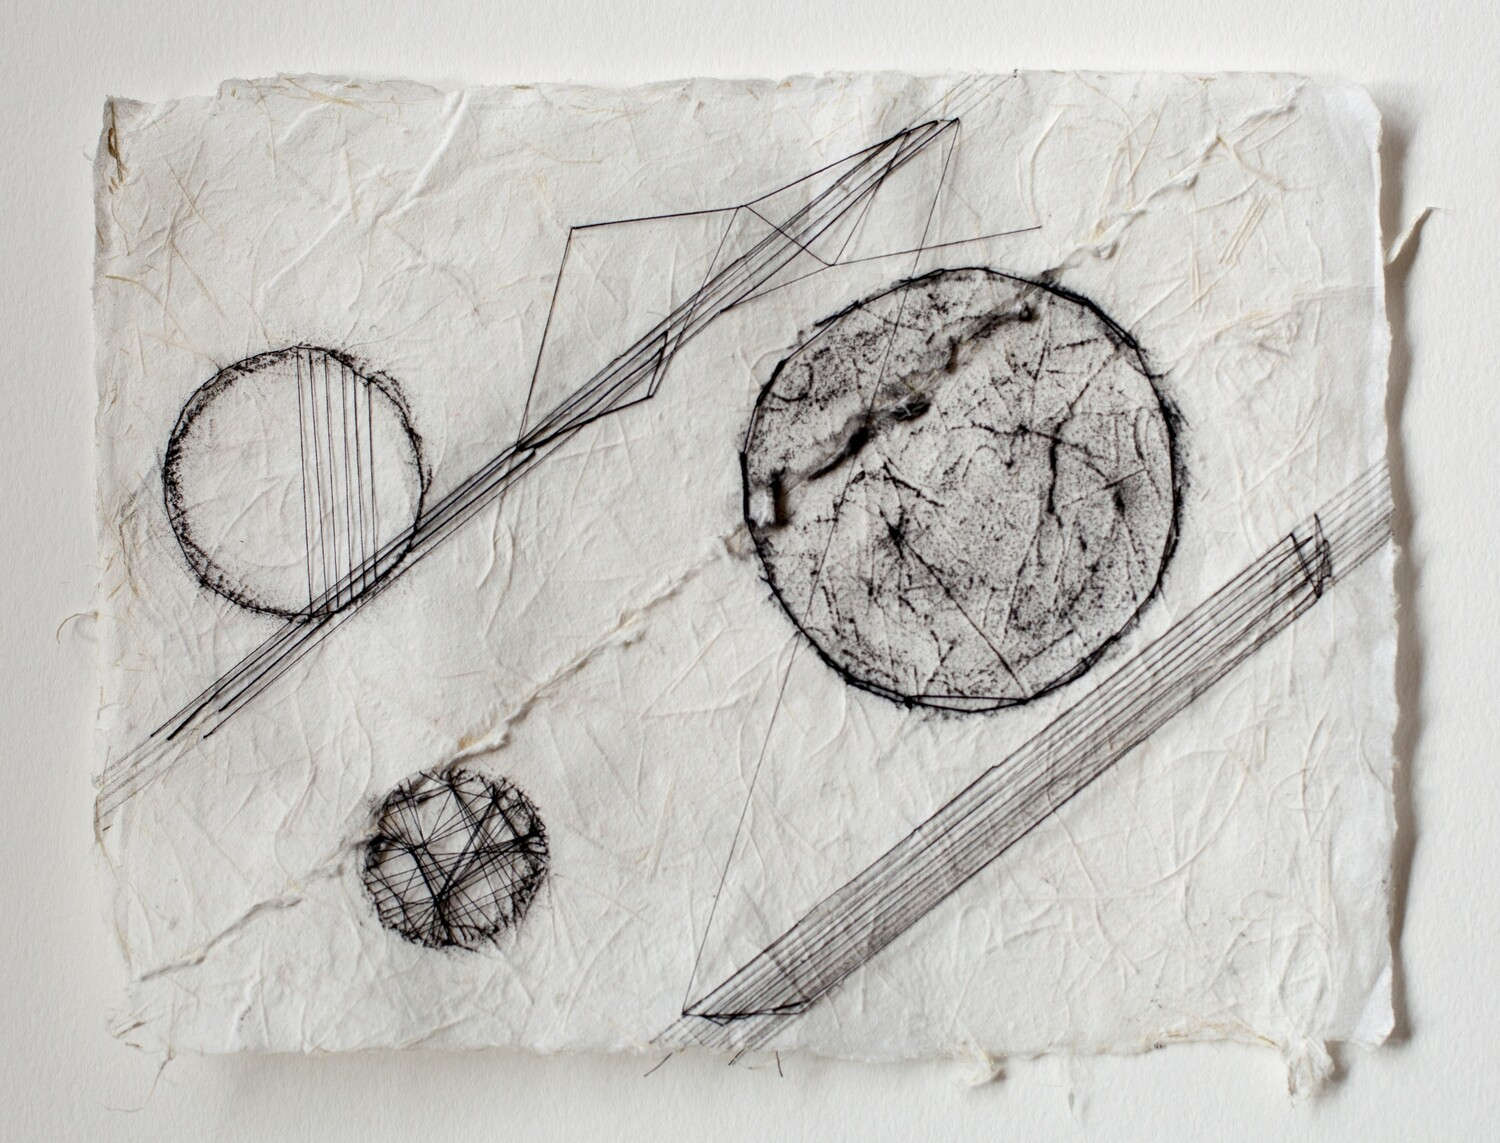 study in circles and lines #2